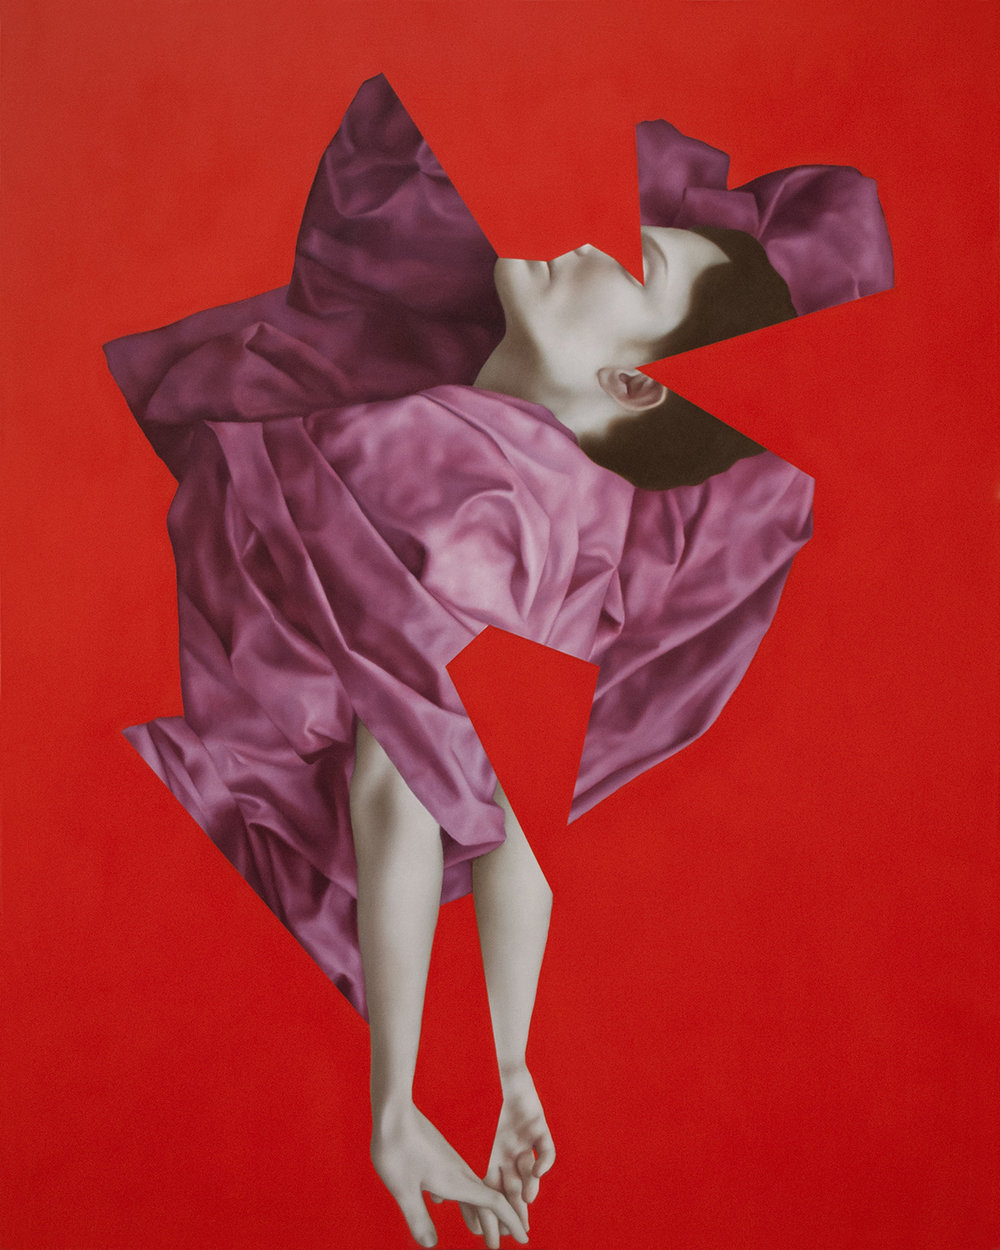 Orpheus Red, oil on canvas, 100 x 80 cm, 2017